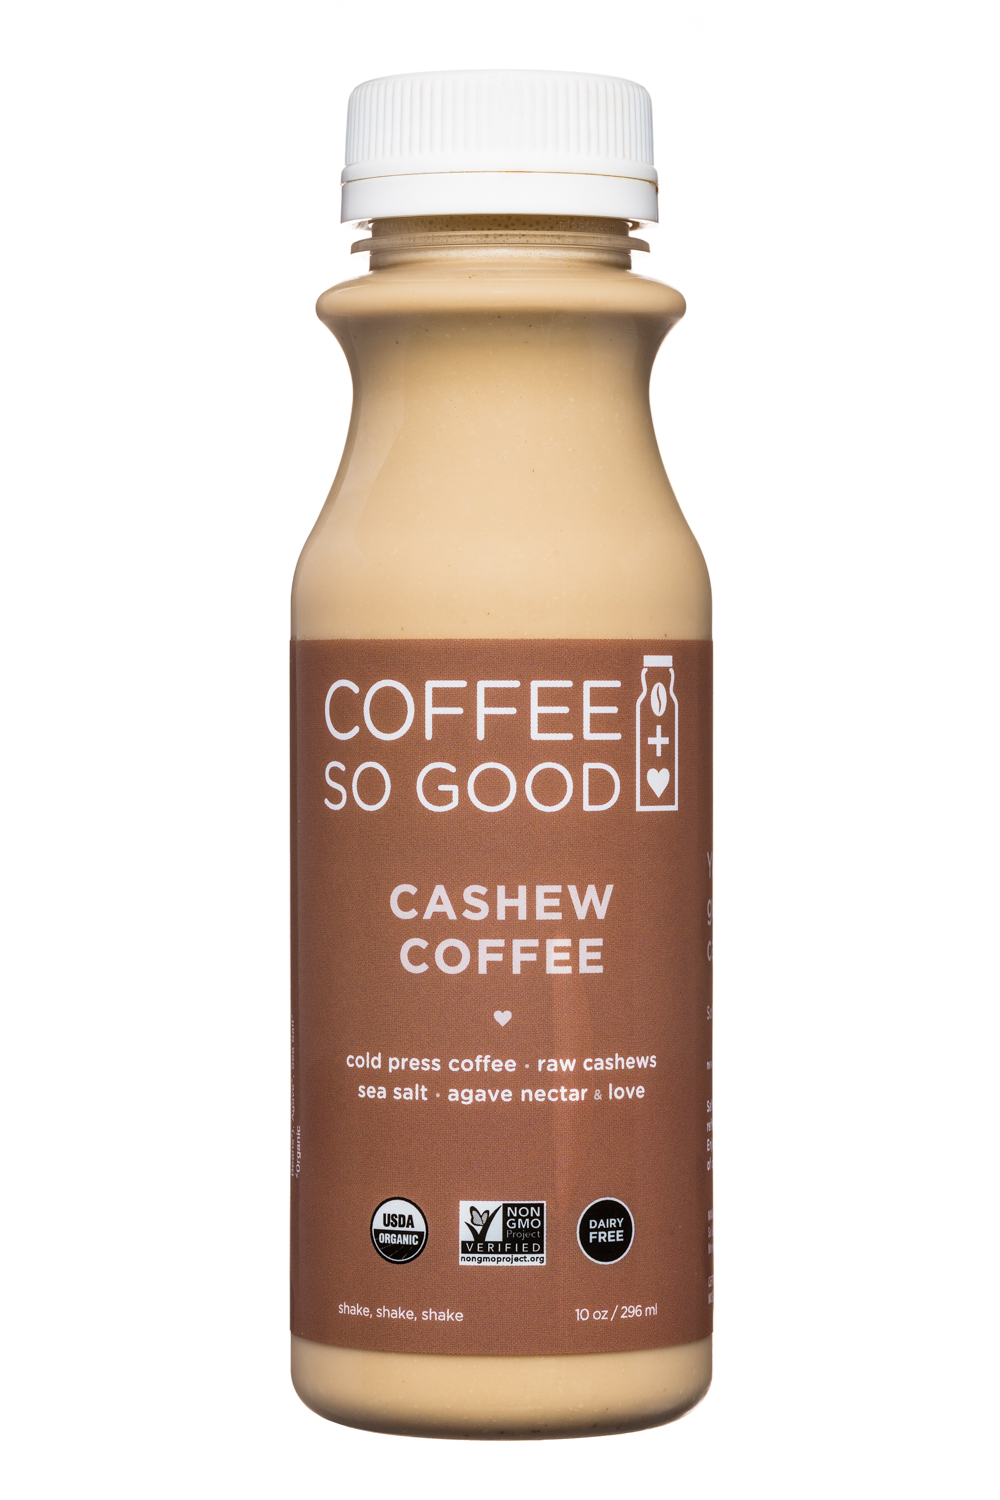 Cashew Coffee